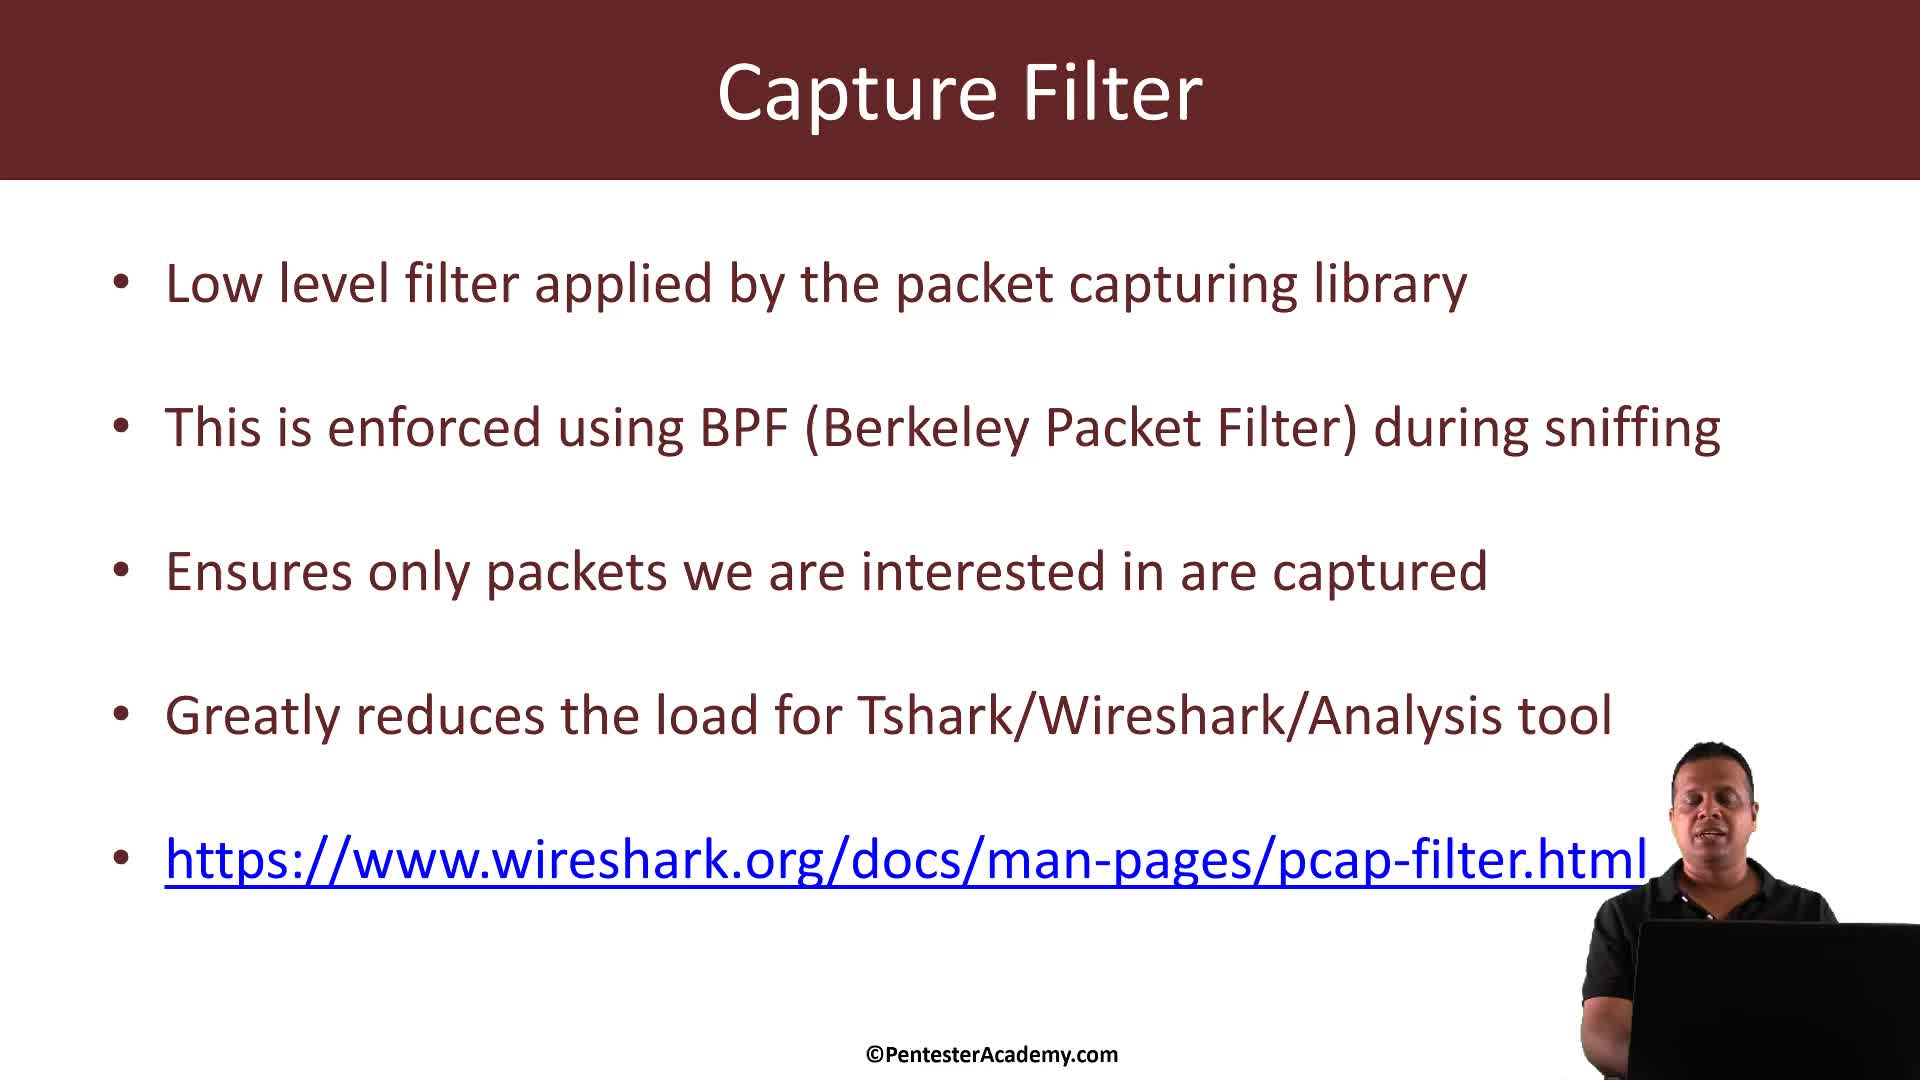 Tshark: Display and Capture Filters via Command Line